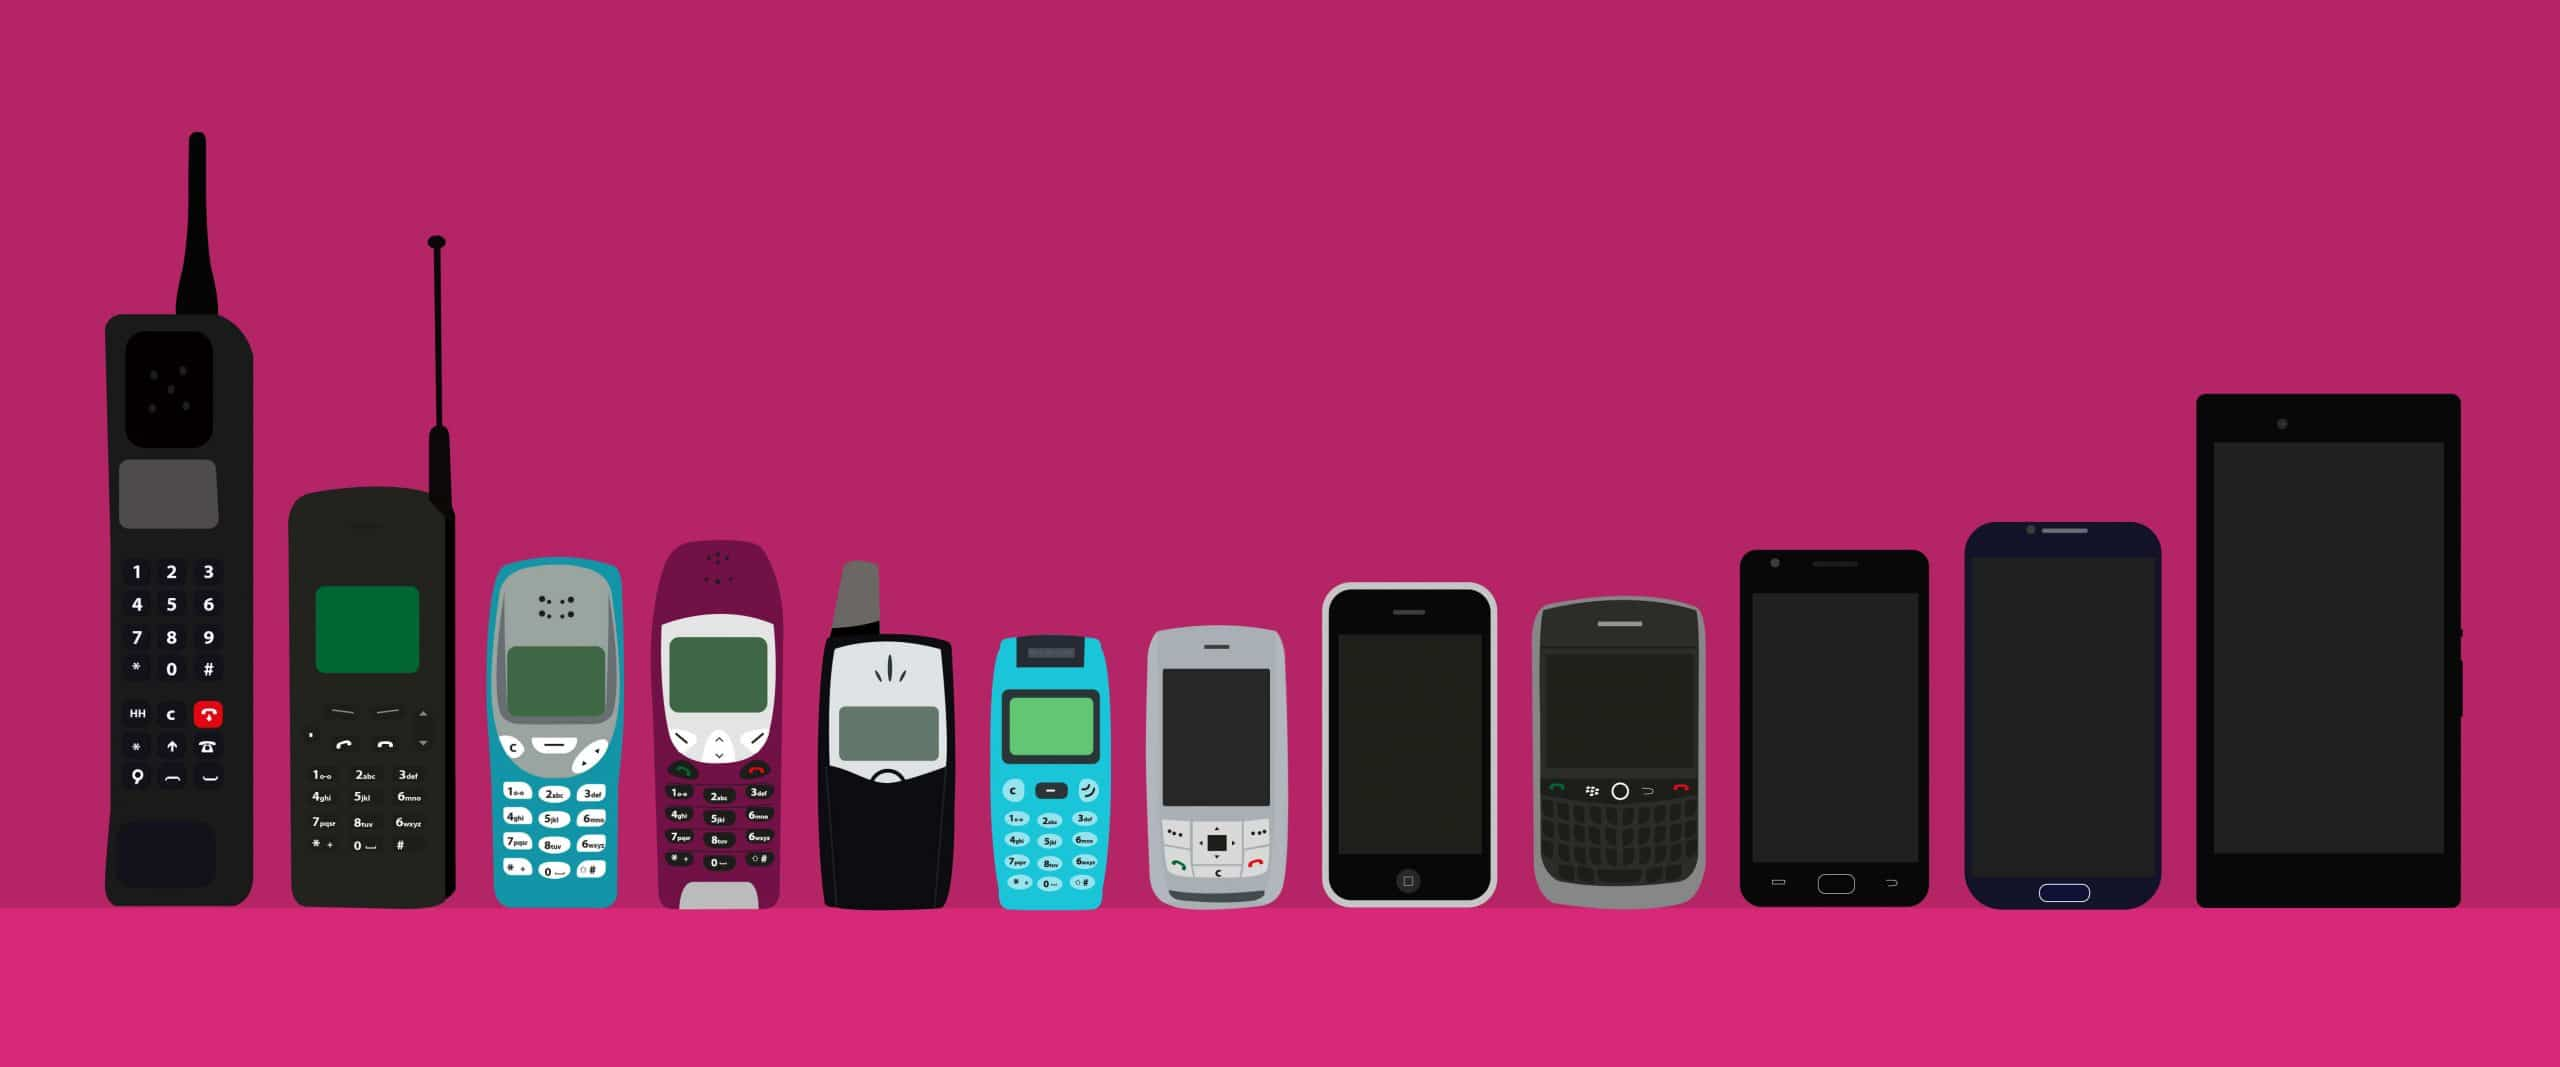 mobile devices from 1980 to 2019